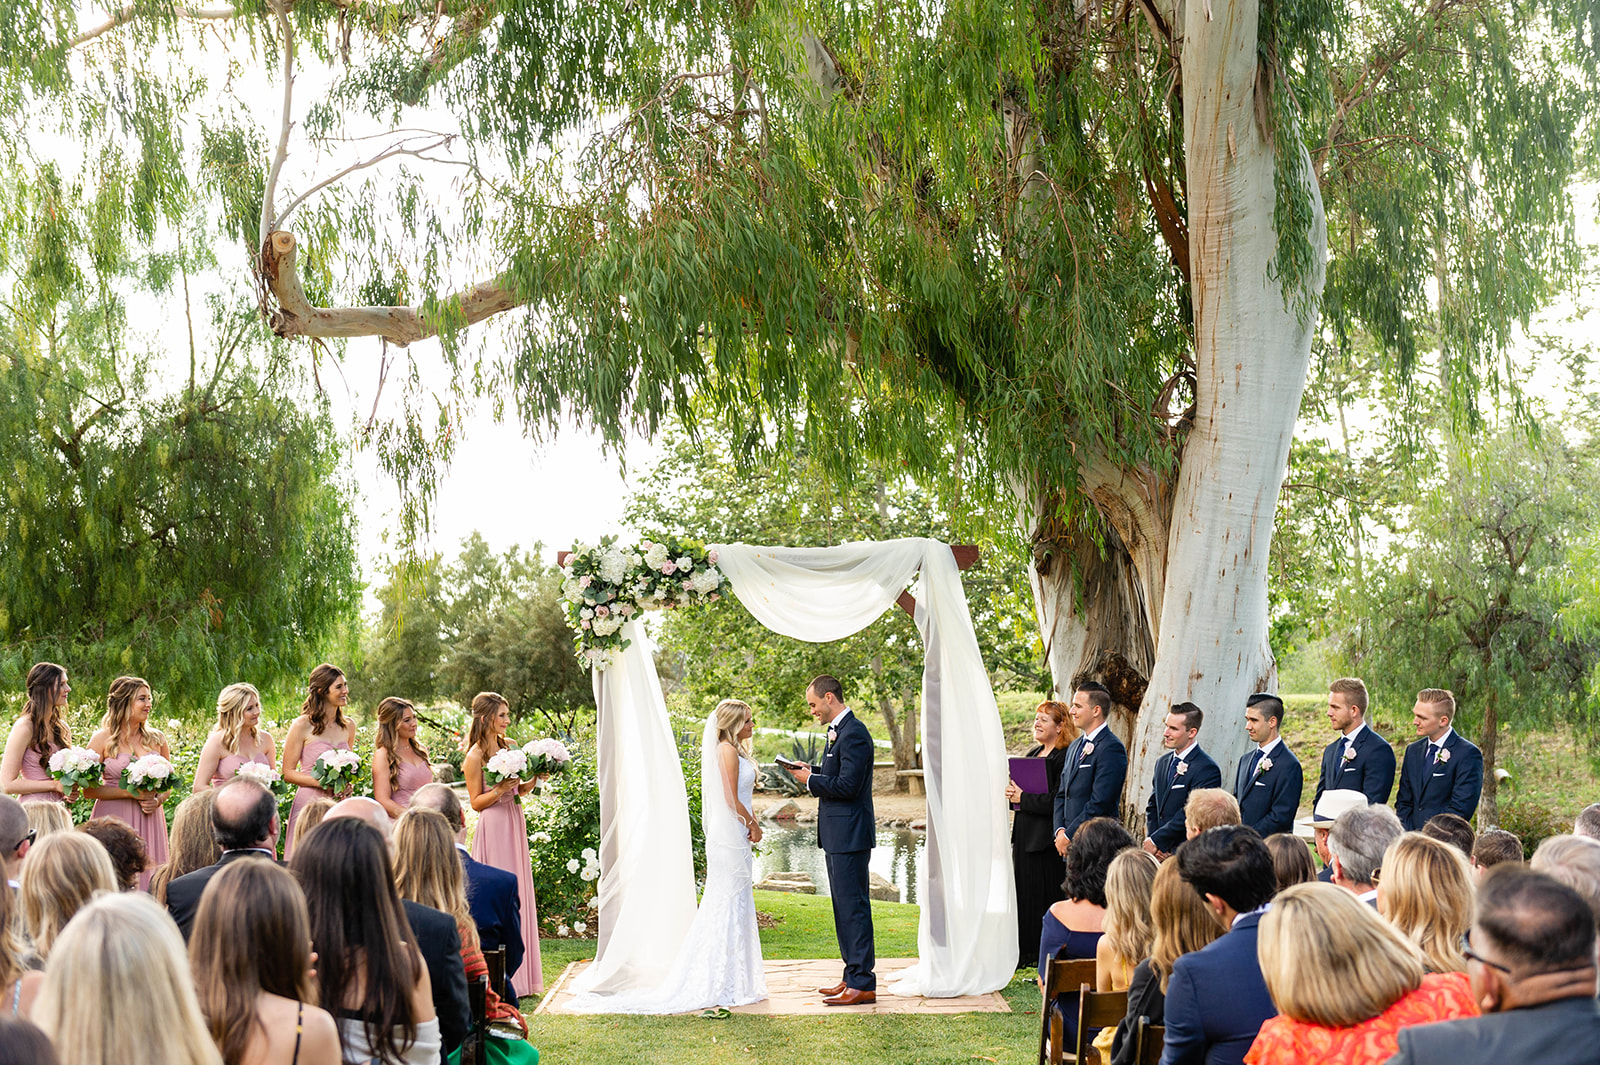 personalized vows at outdoor wedding ceremony